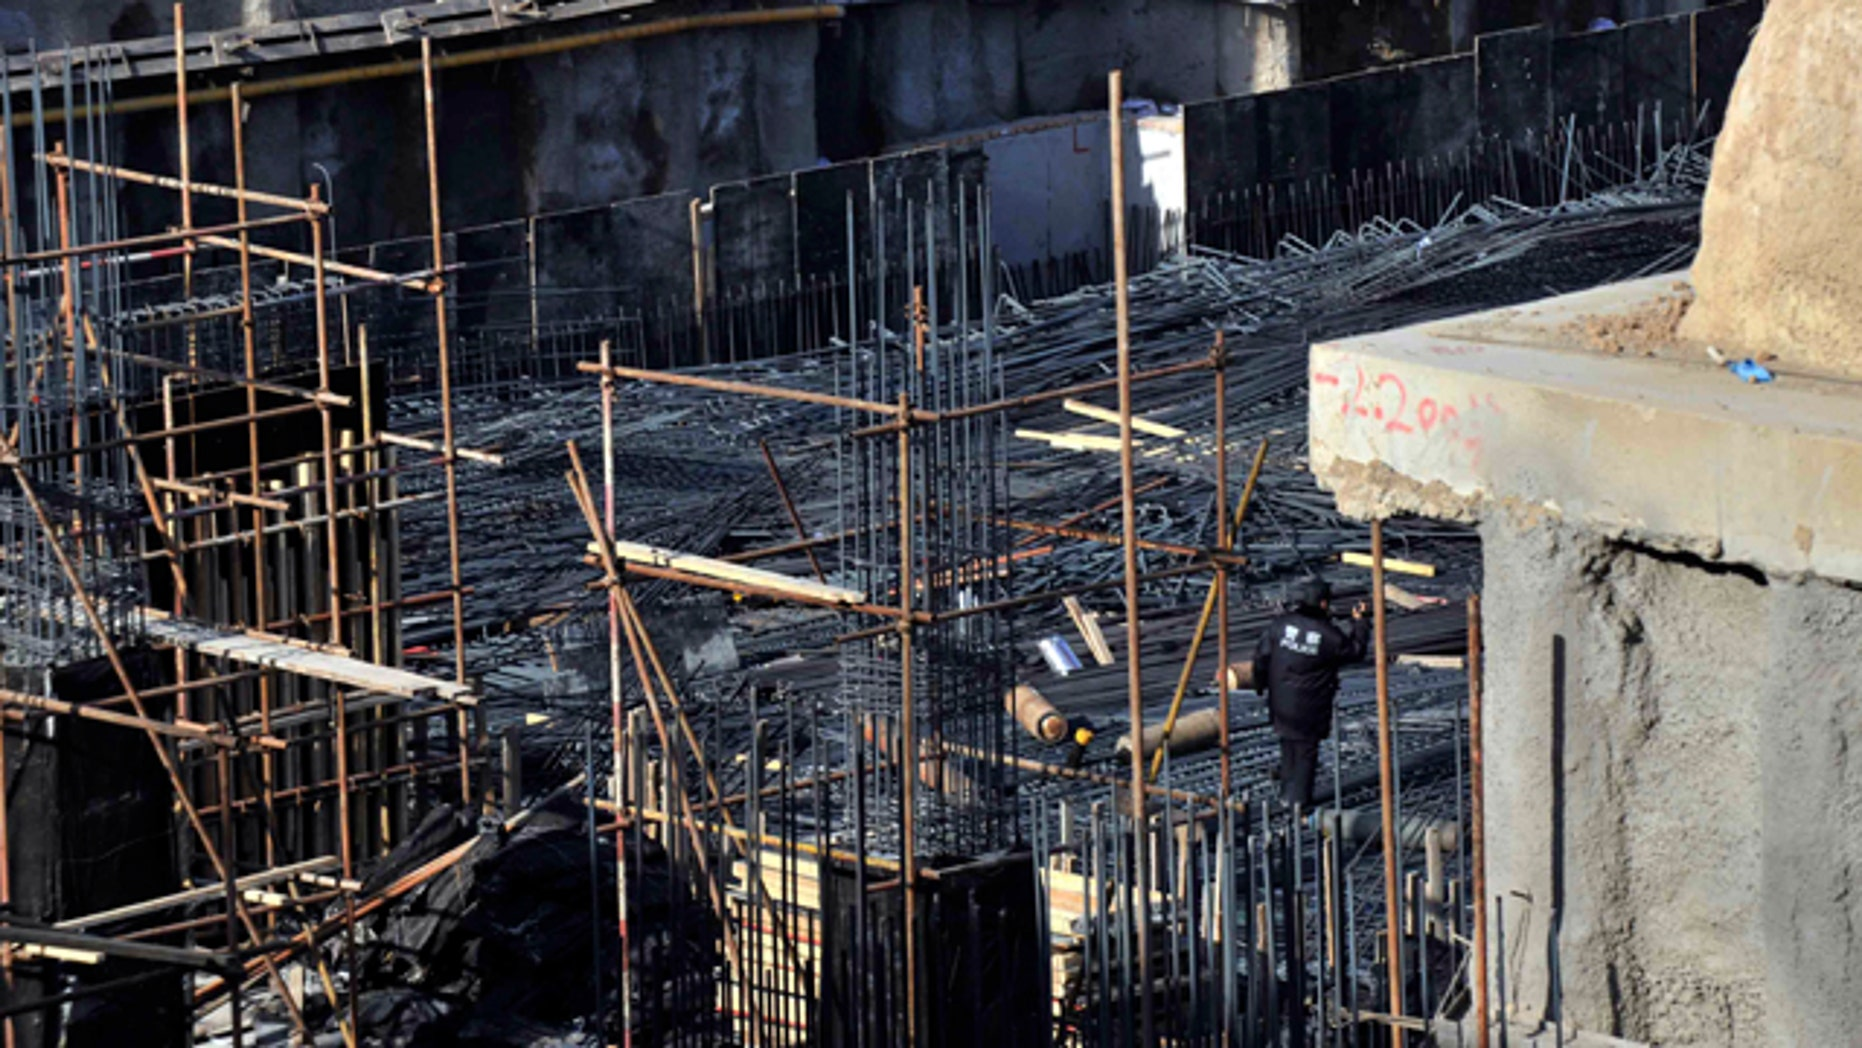 Dec. 29, 2014: This photo released by China's Xinhua News Agency shows the construction site where a scaffolding collapsed in the Tsinghua High School in Beijing. (AP Photo/Xinhua, Li Wen)